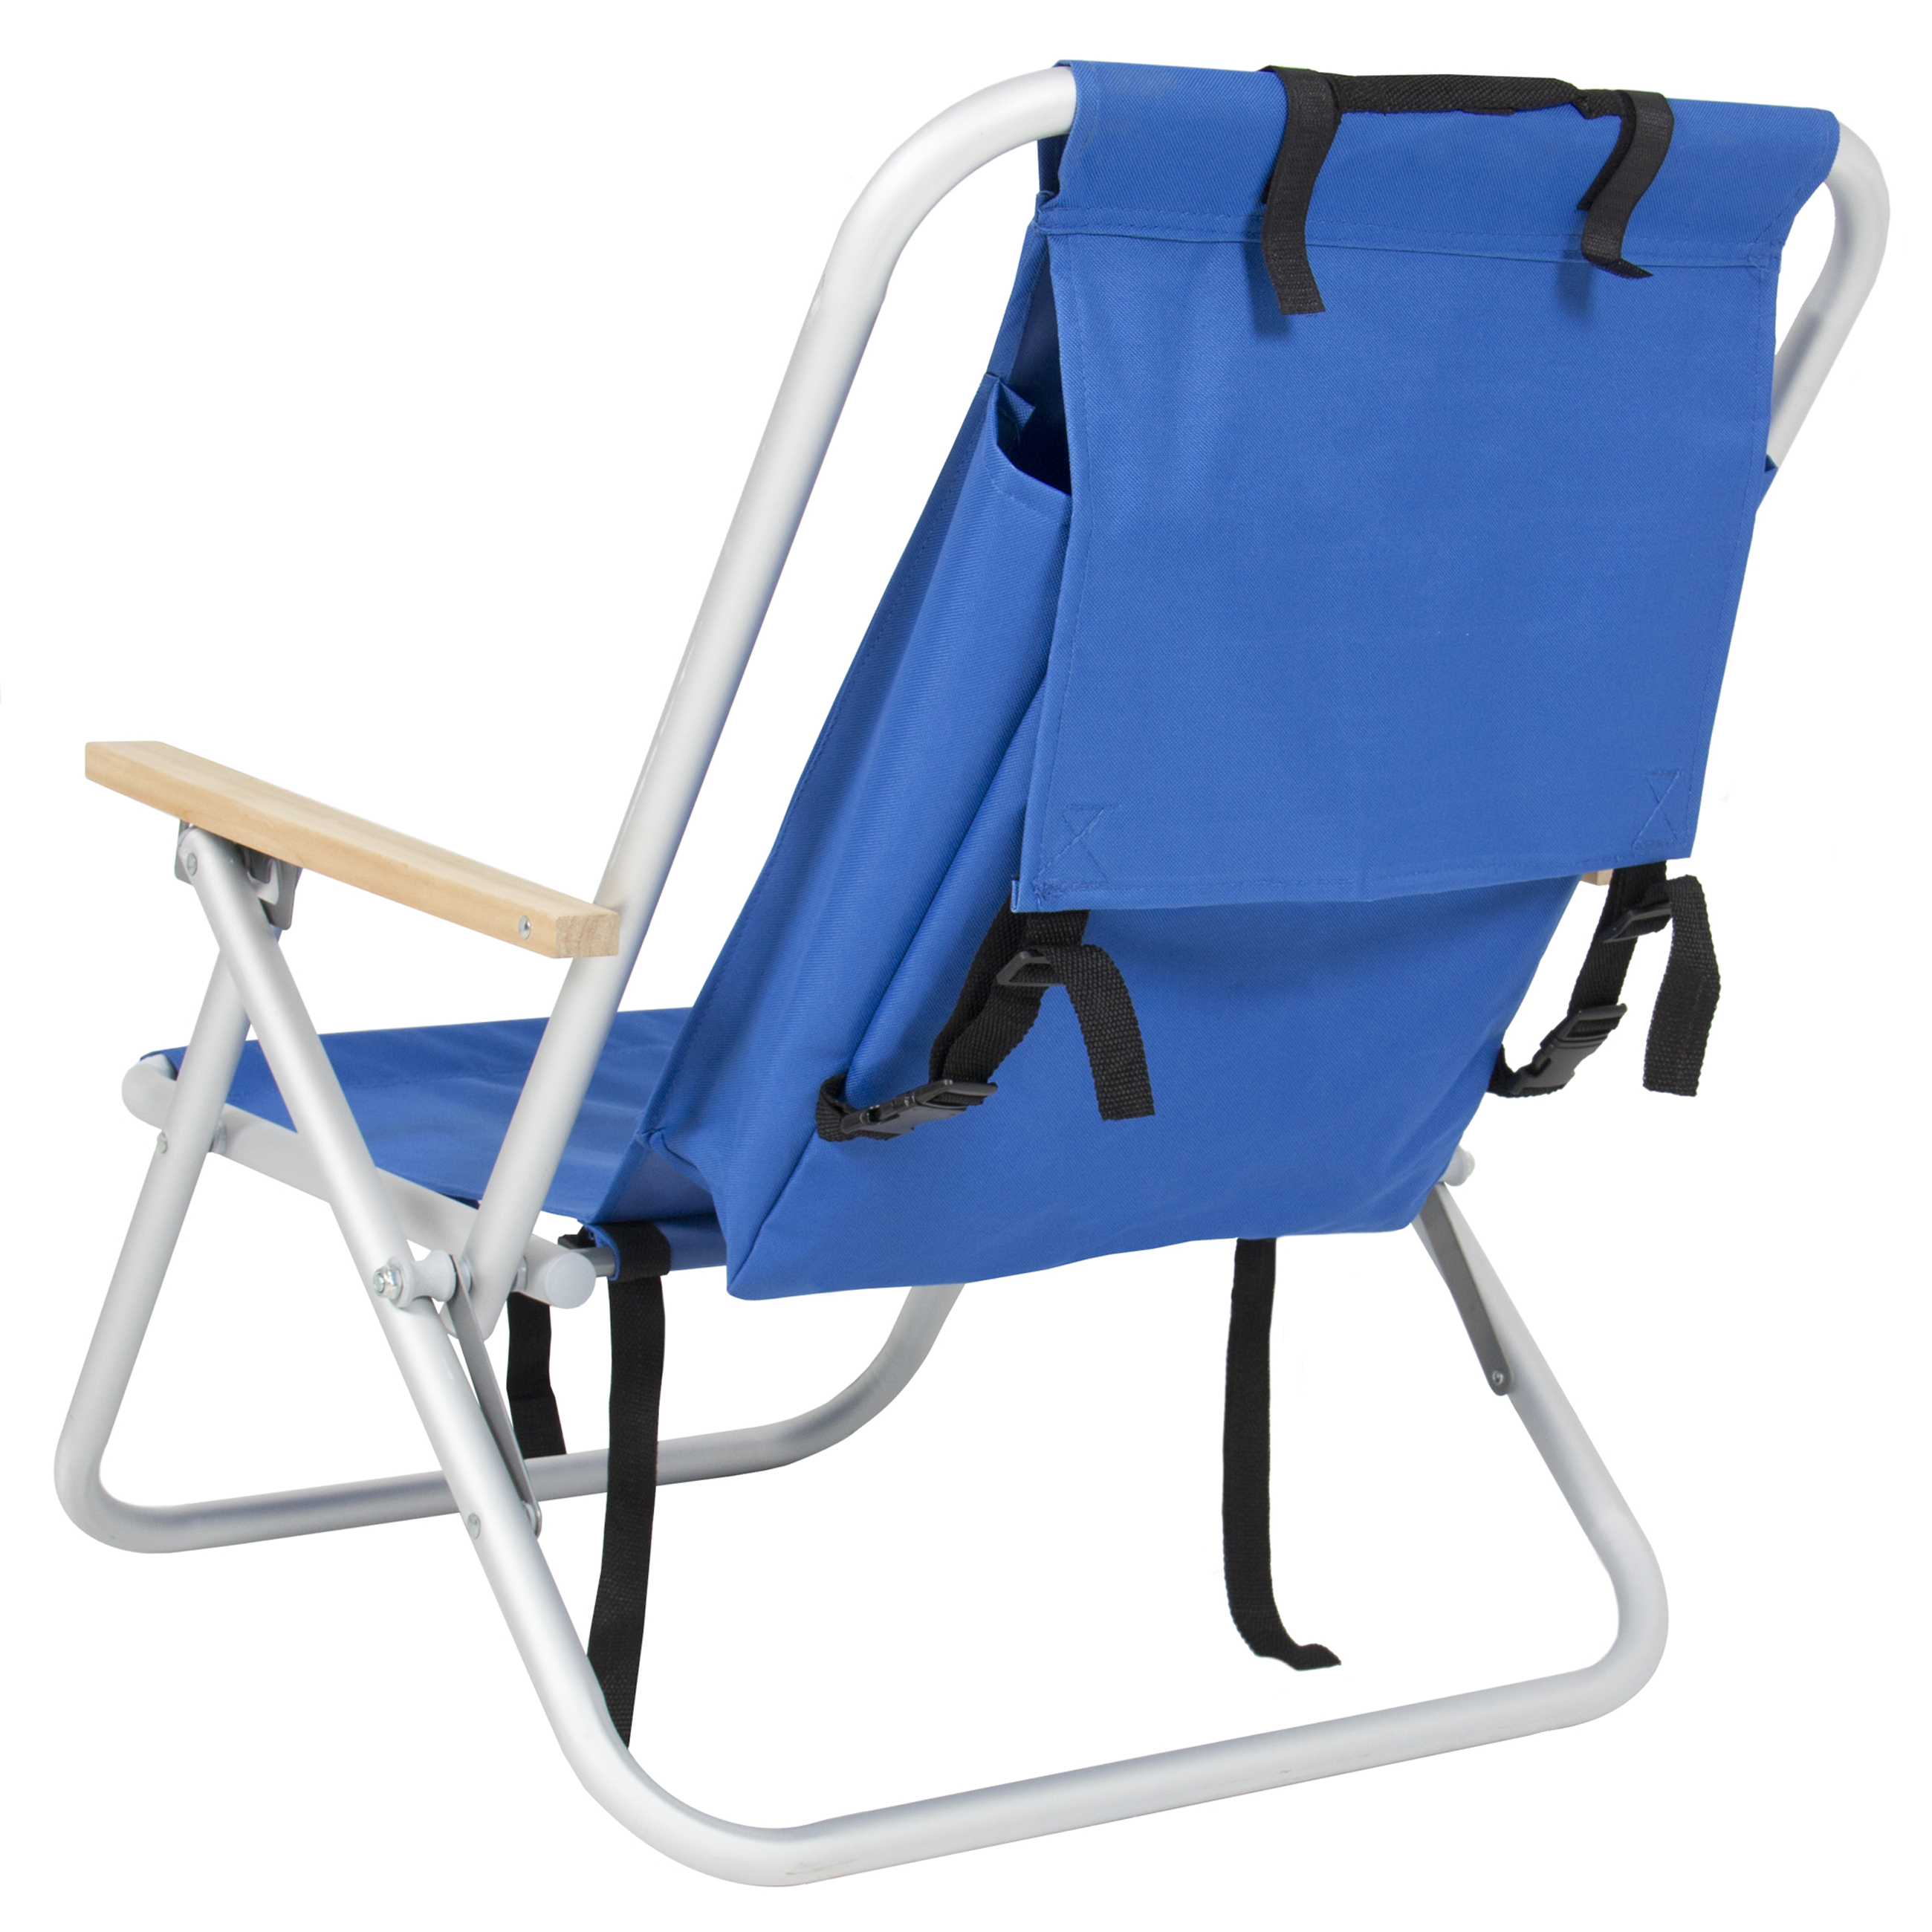 backpack chairs table chair covers ebay best choice products portable folding seat for beach camping tailgate w removable padded headrest cup holder blue walmart com